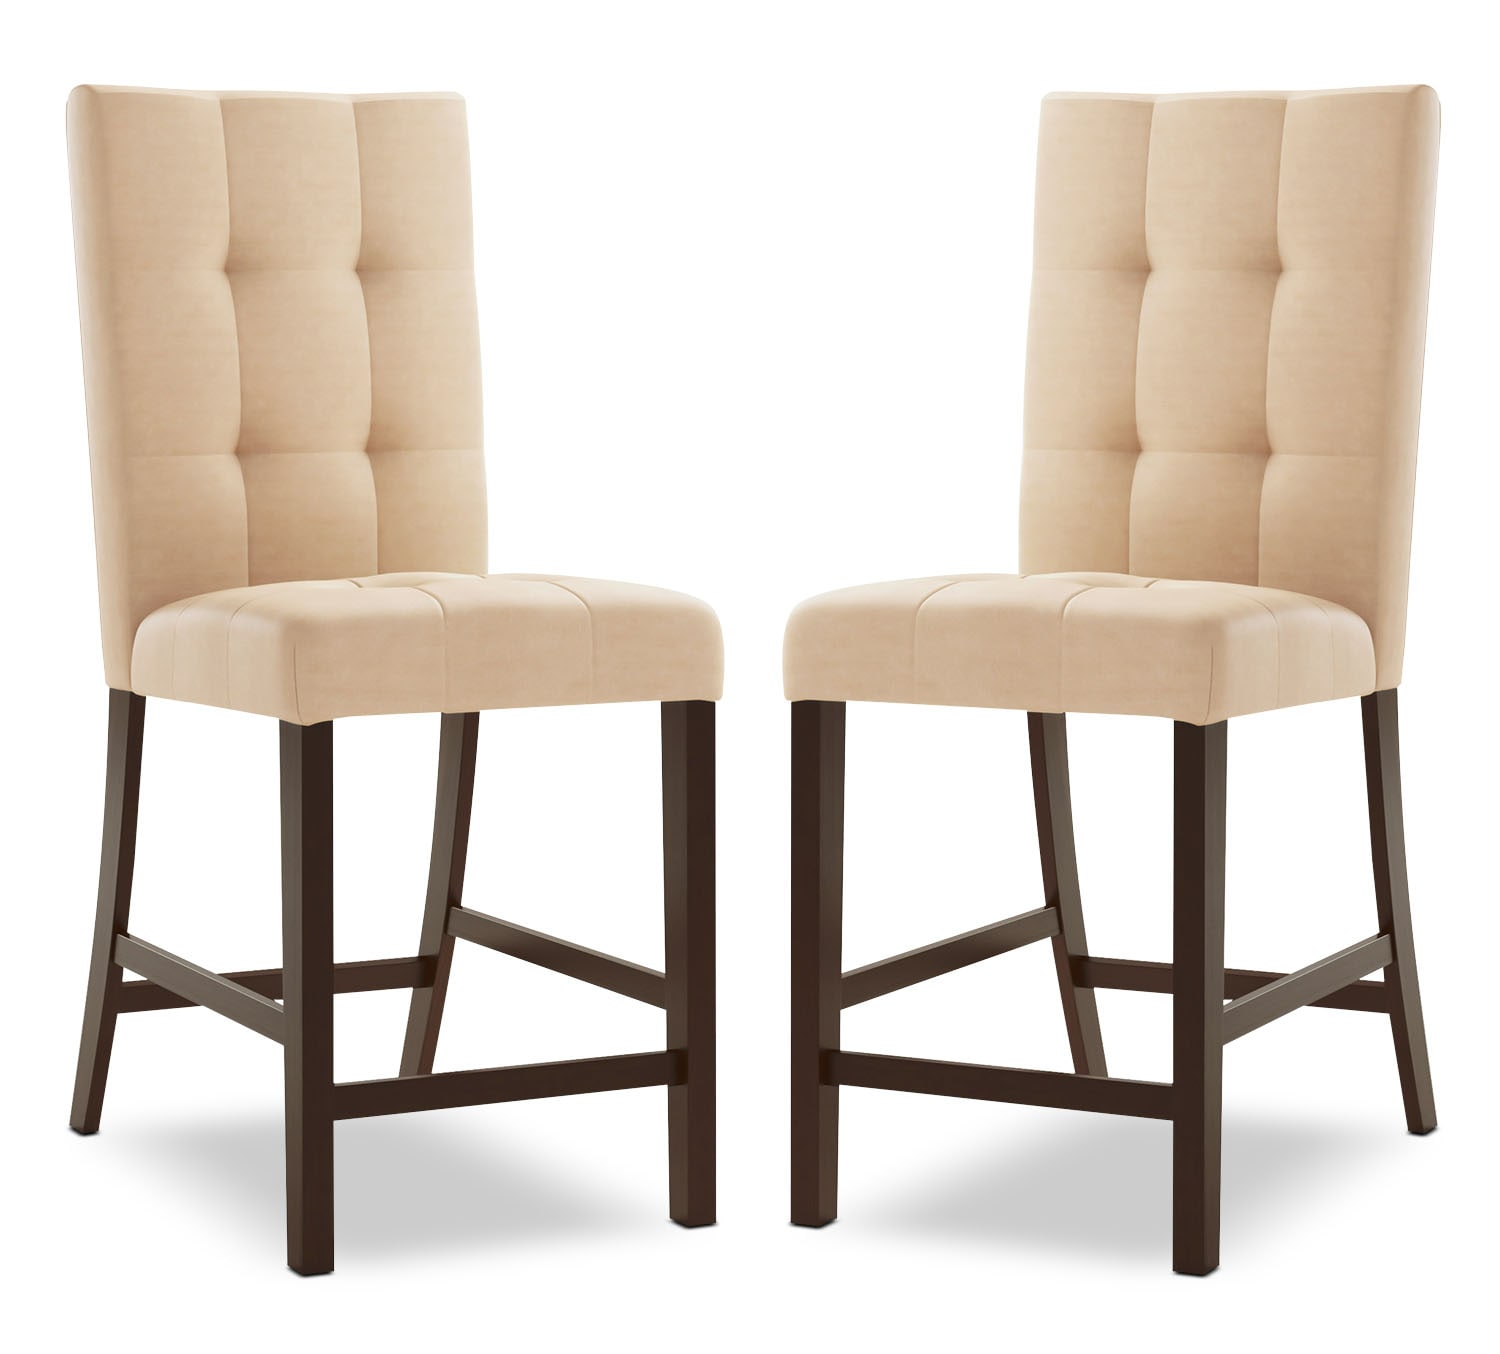 Bistro square tufted counter height dining chair set of 2 - Tufted dining room chairs ...